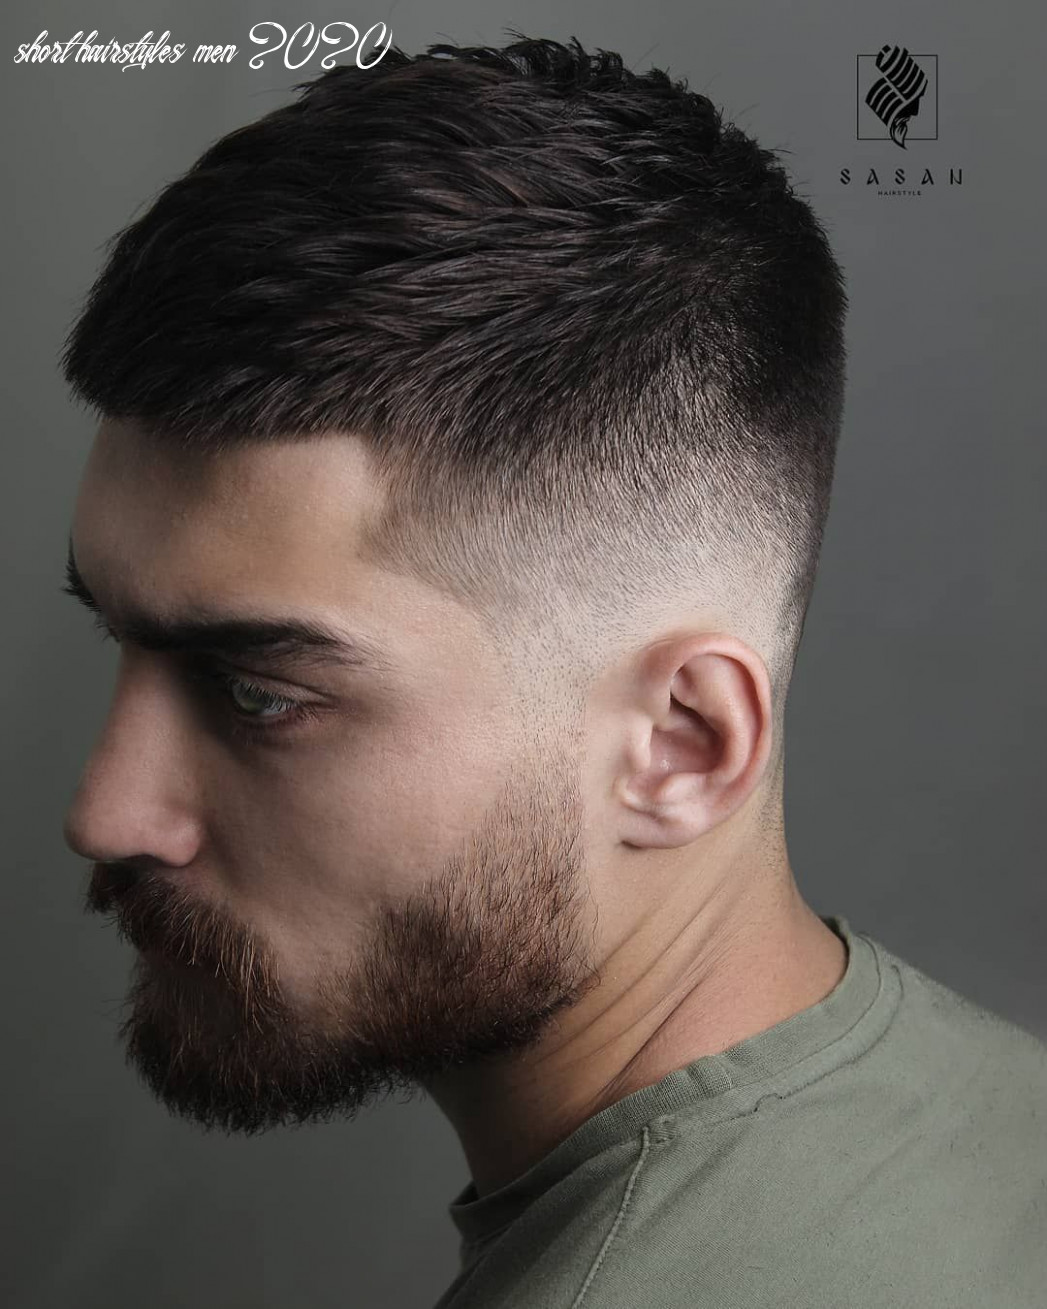 9 cool haircuts for men (99 styles) | young men haircuts, mens